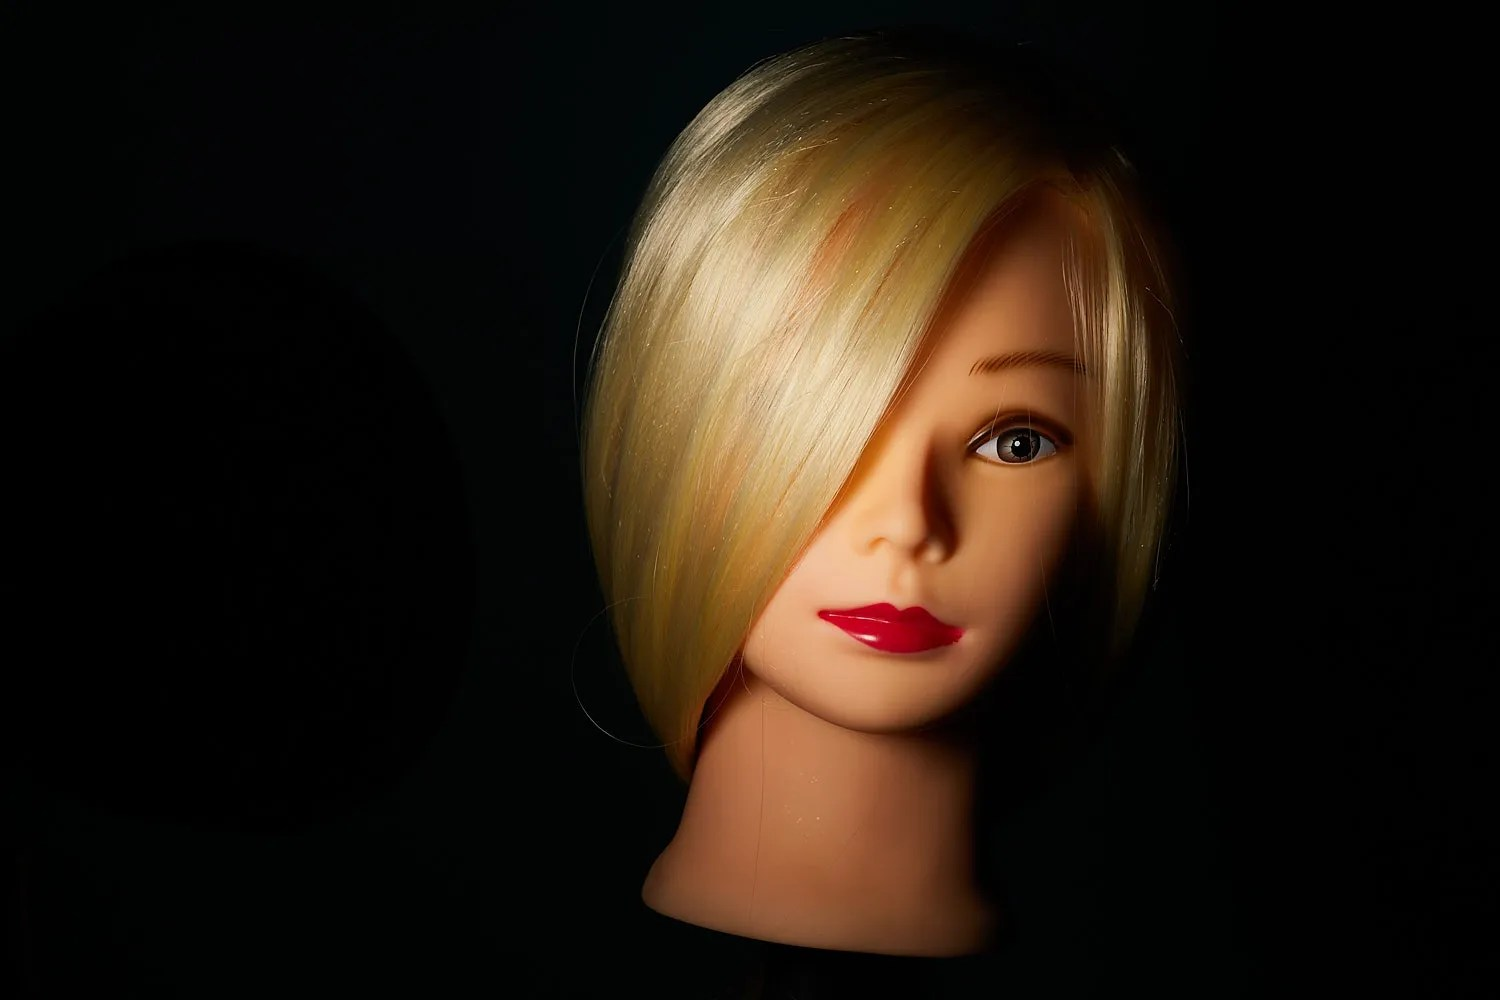 A dummy head showing the inverse square law in action. The head is close to the flash darkening the background